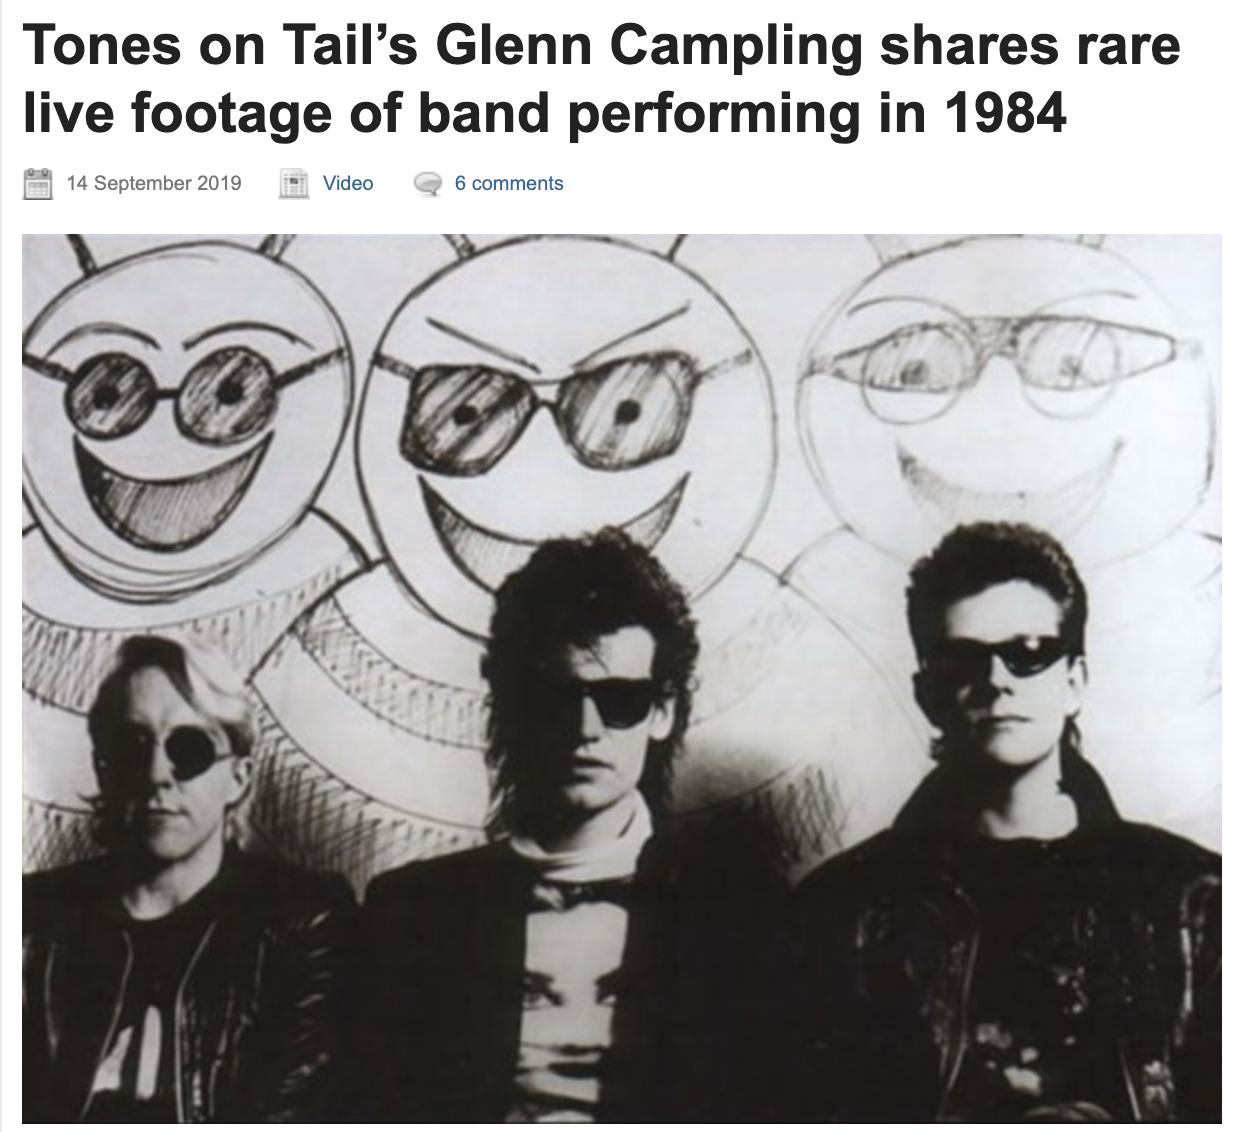 Tones on Tail's Glenn Campling shares rare live footage of band performing in 1984